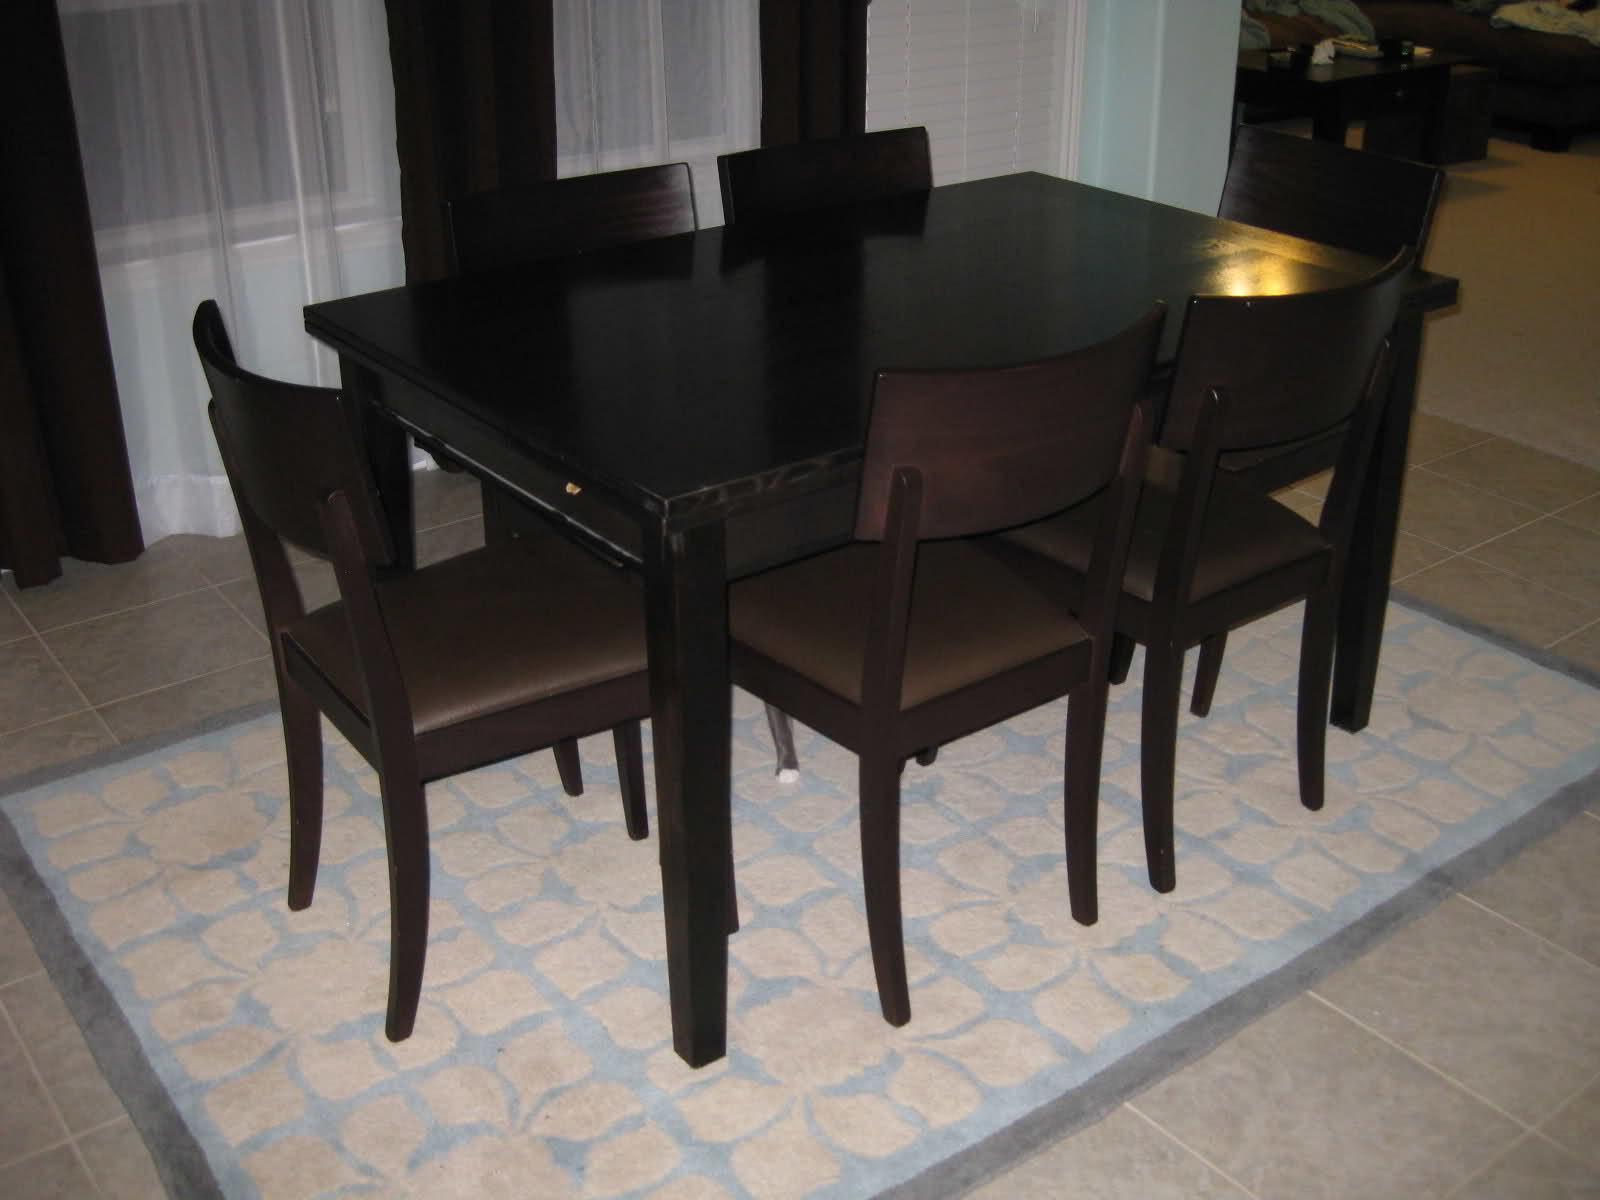 On Style Today 2020 12 14 Crate And Barrel Dining Room Here